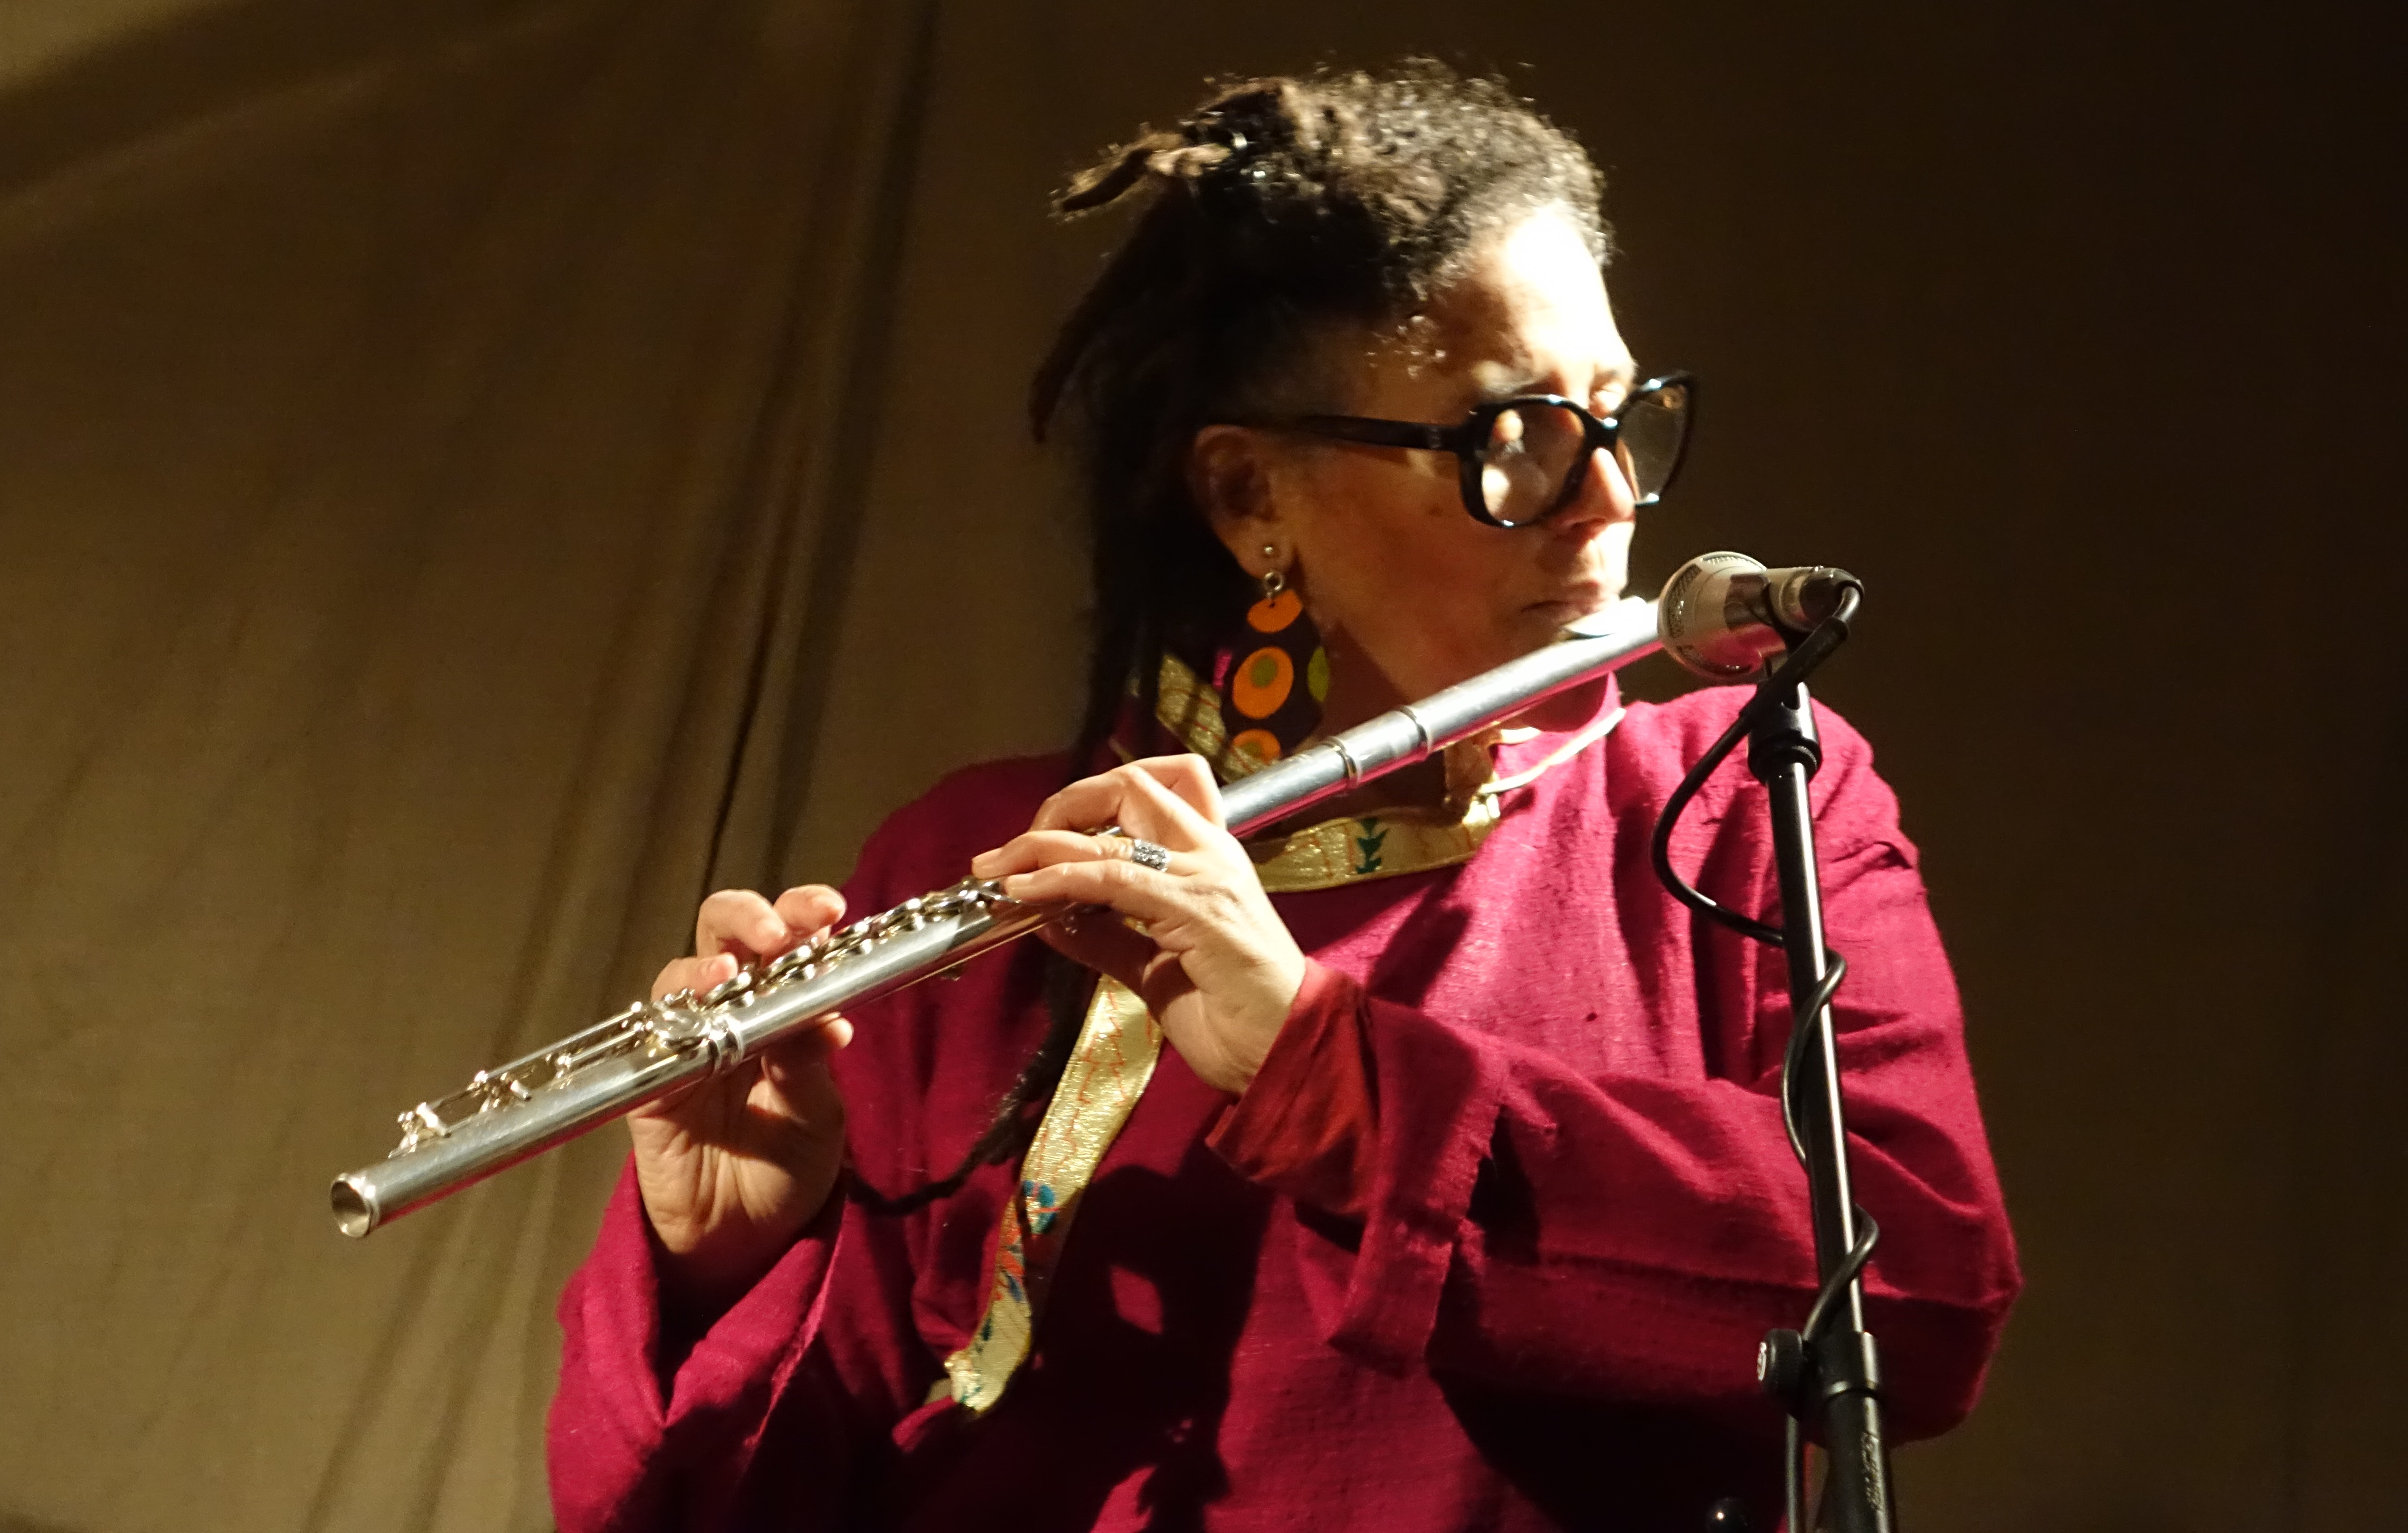 Nicole Mitchell at Cafe Oto, London in April 2019